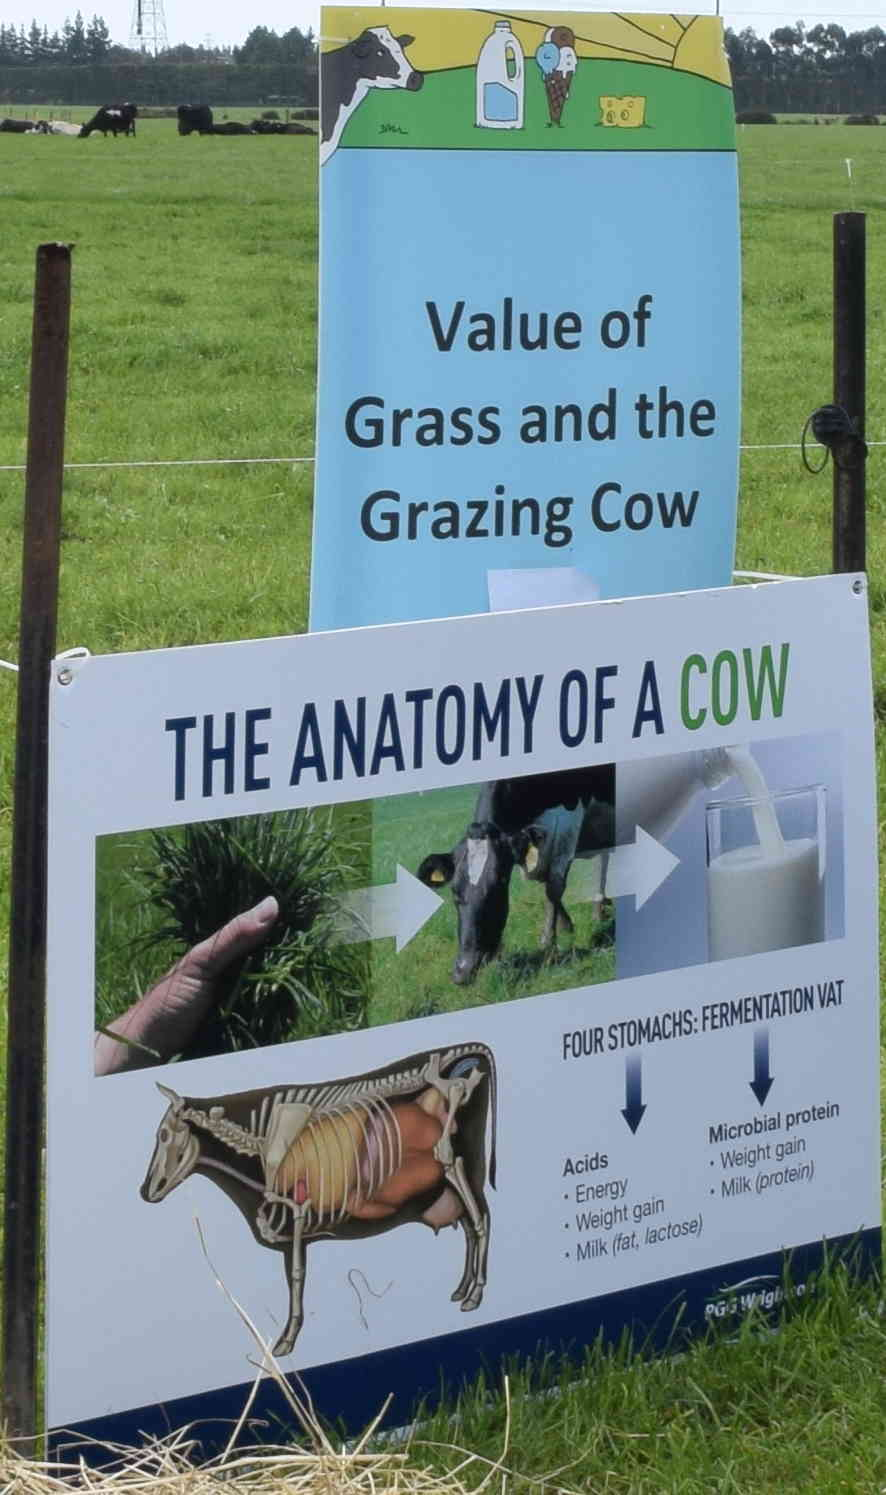 """Grass - the NZ advantage: LUDF informed that ryegrass and clover pasture is one of country's key competitive advantages as it is grown most of the year and tolerates frequent grazing. """"The clover content aids microbial conversion of atmospheric nitrogen to plant proteins,"""" it says."""